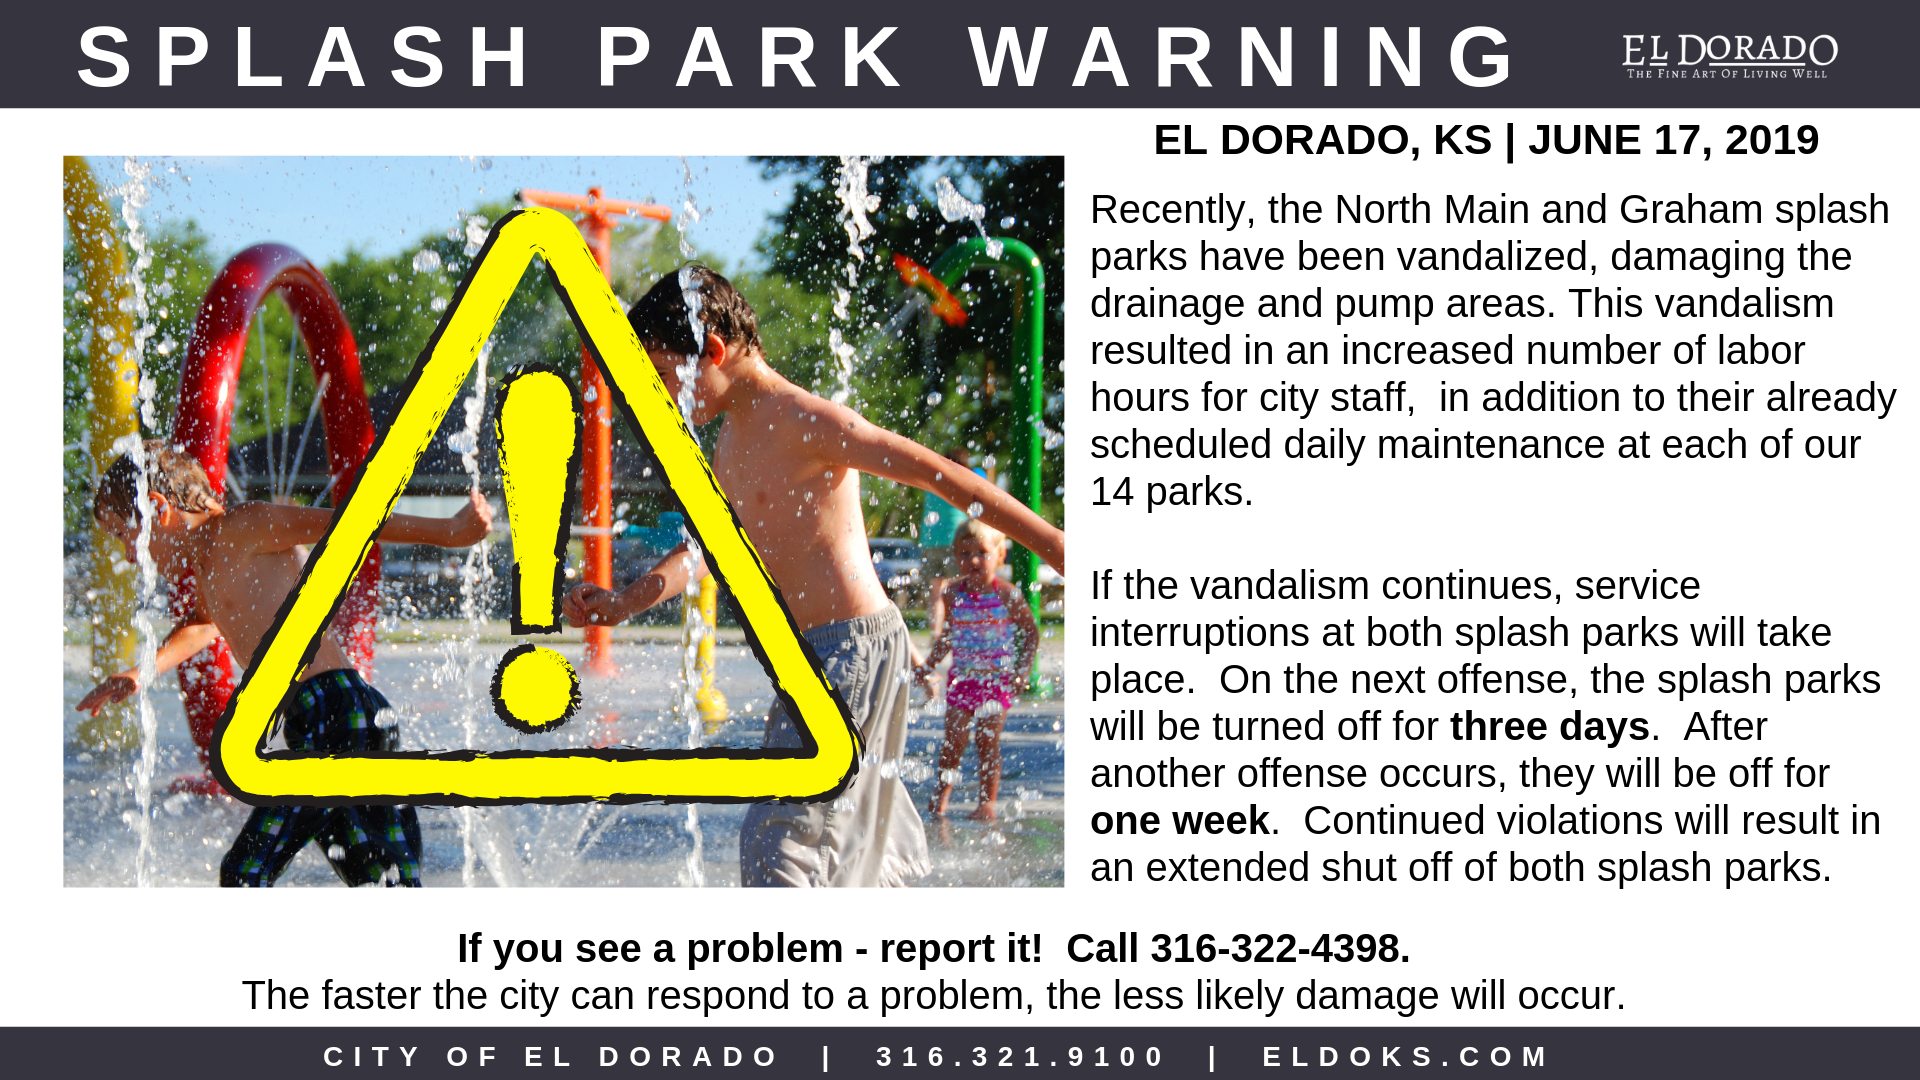 Splash Park Warning 6.17.19 (2)